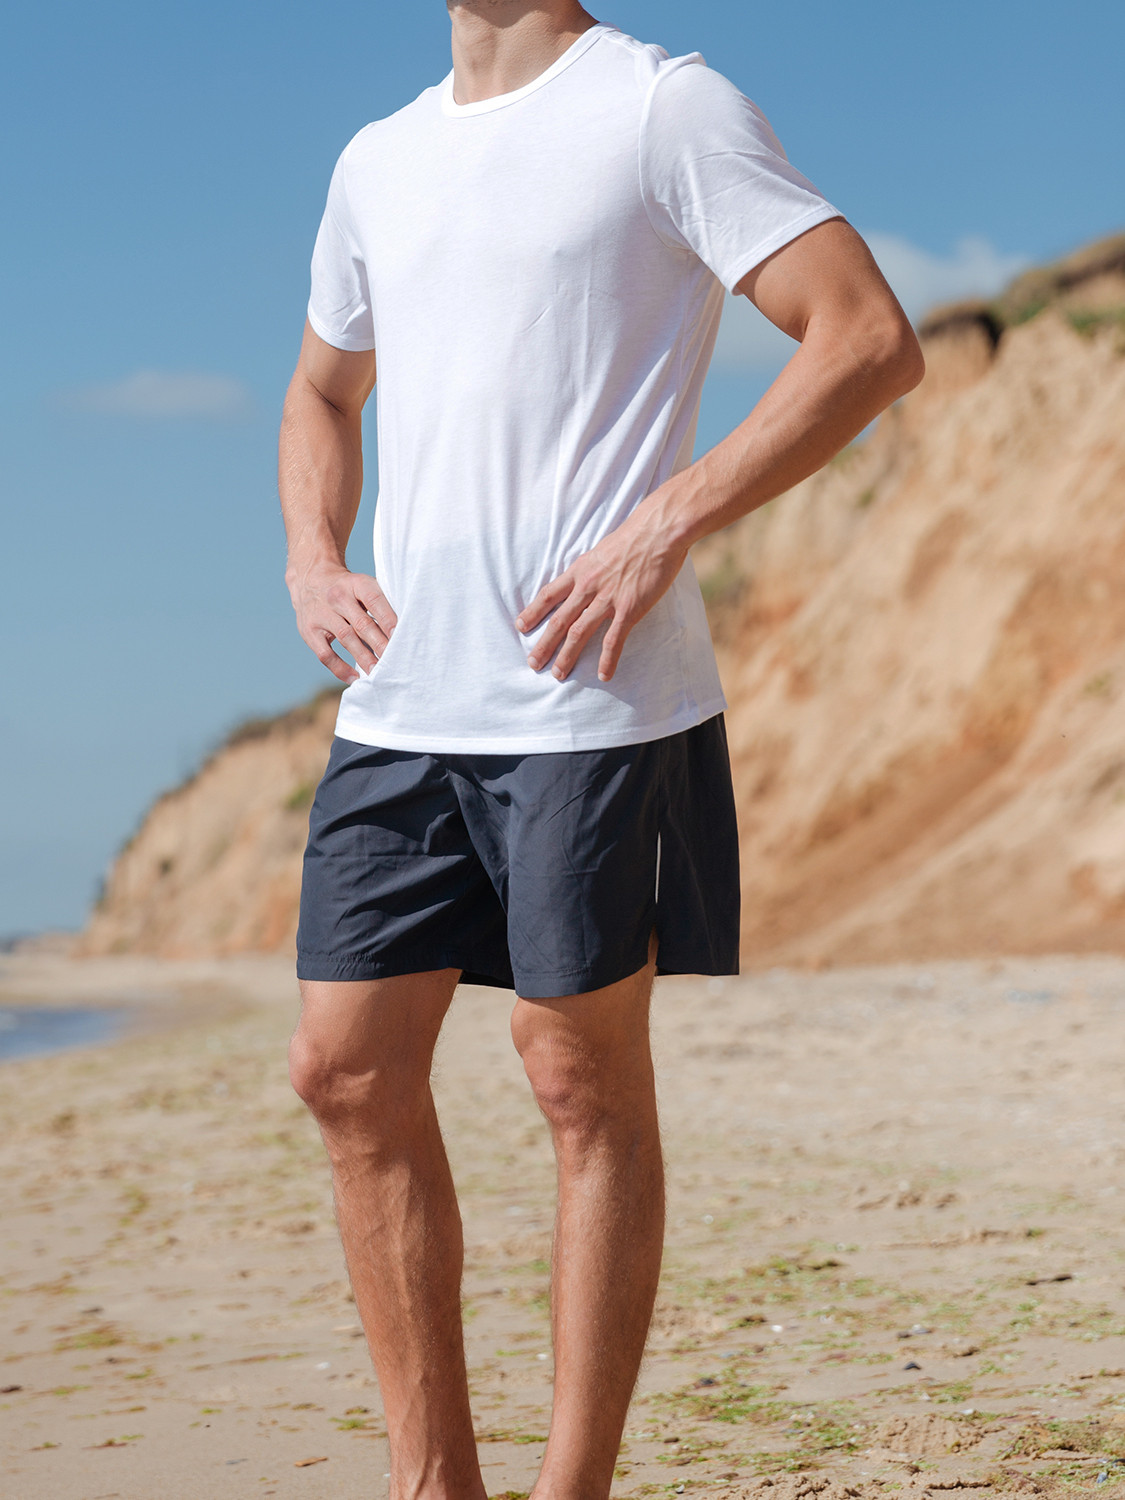 Men's outfit idea for 2021 with white crew neck t-shirt, navy swimming shorts. Suitable for summer.